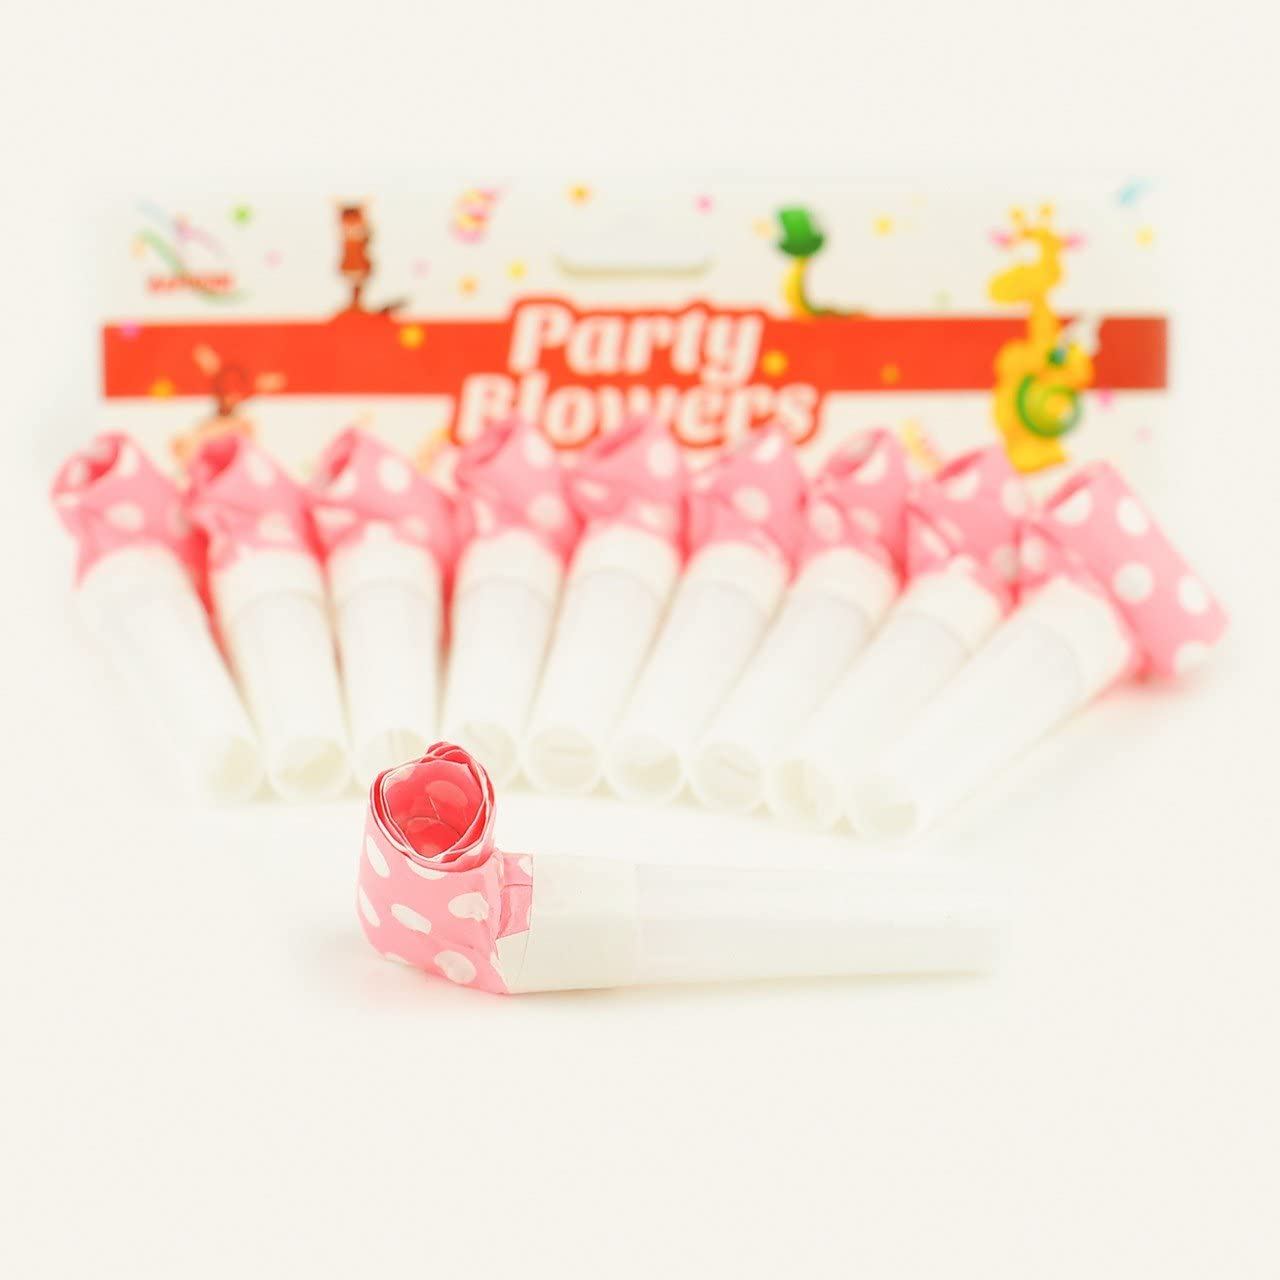 Party Blowers Birthday Blowouts New Bag Supplies X Horns Favours Toy Happium Pack of 10 Black